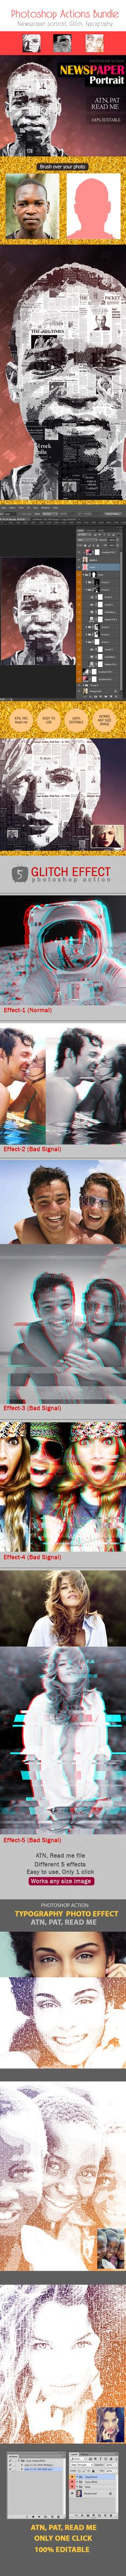 Photoshop Action Bundle #photoeffect Download: http://graphicriver.net/item/photoshop-action-bundle/14206840?ref=ksioks